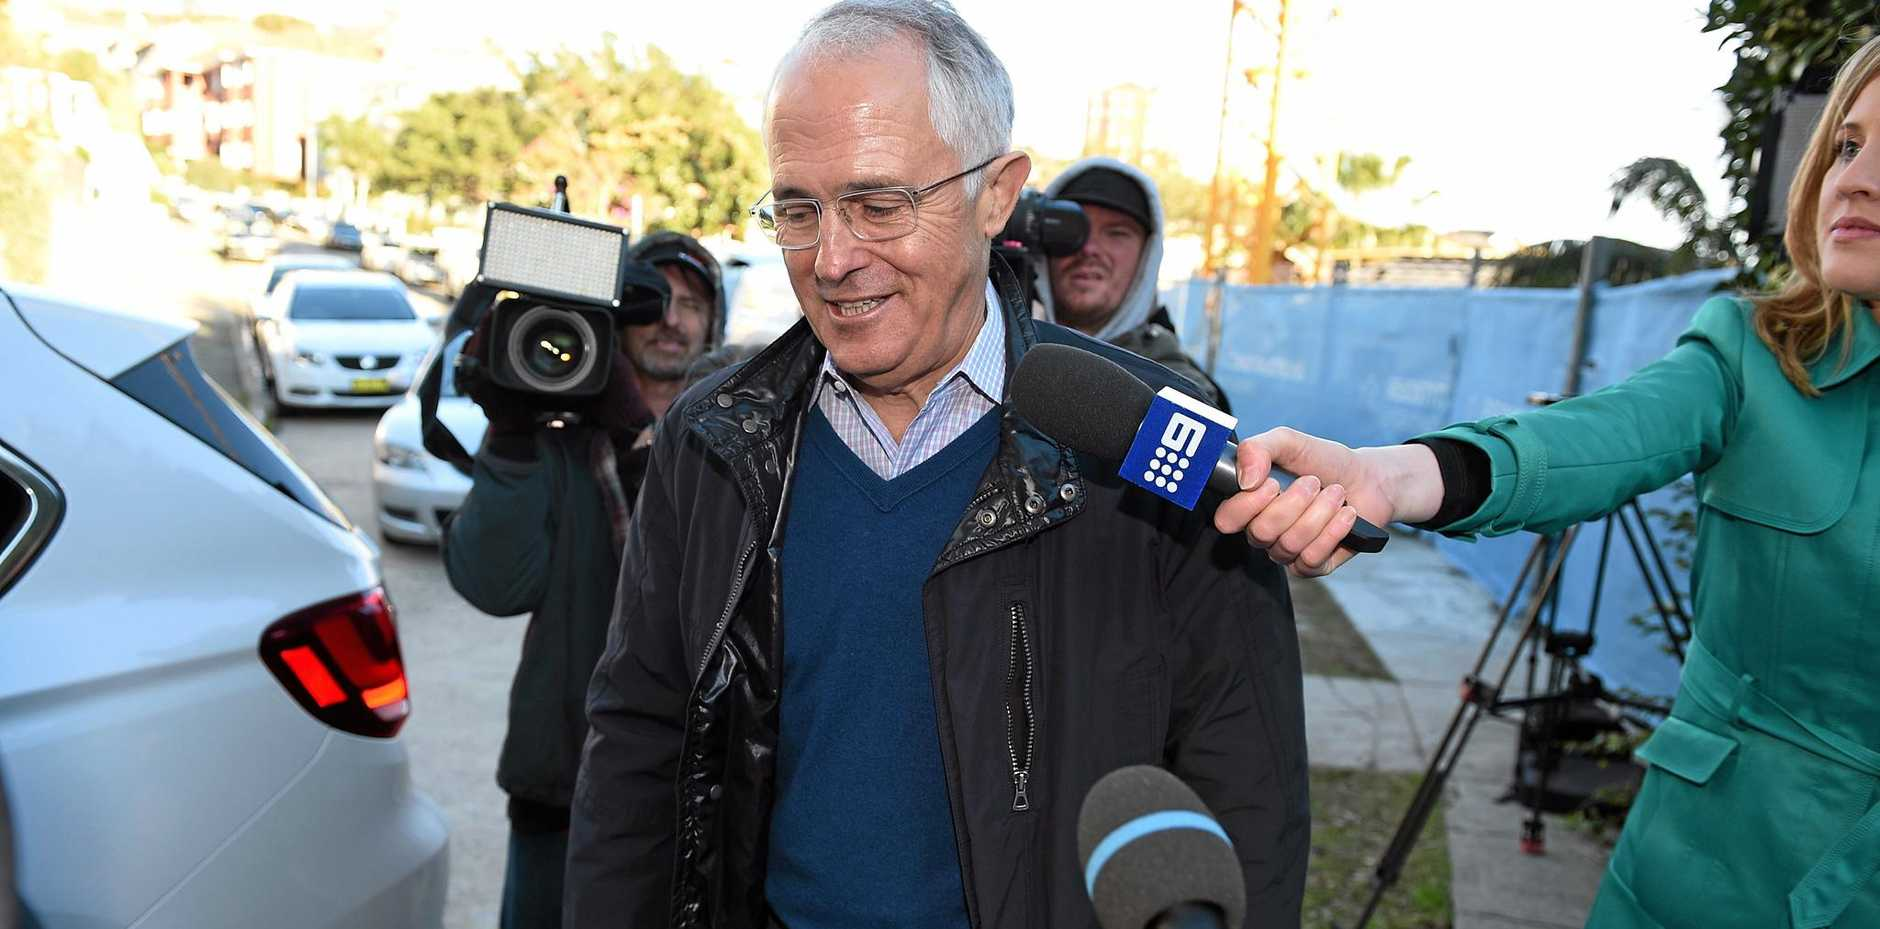 UNDER PRESSURE: Prime Minister Malcolm Turnbull is under fire as the nation faces the possibility of a hung parliament.